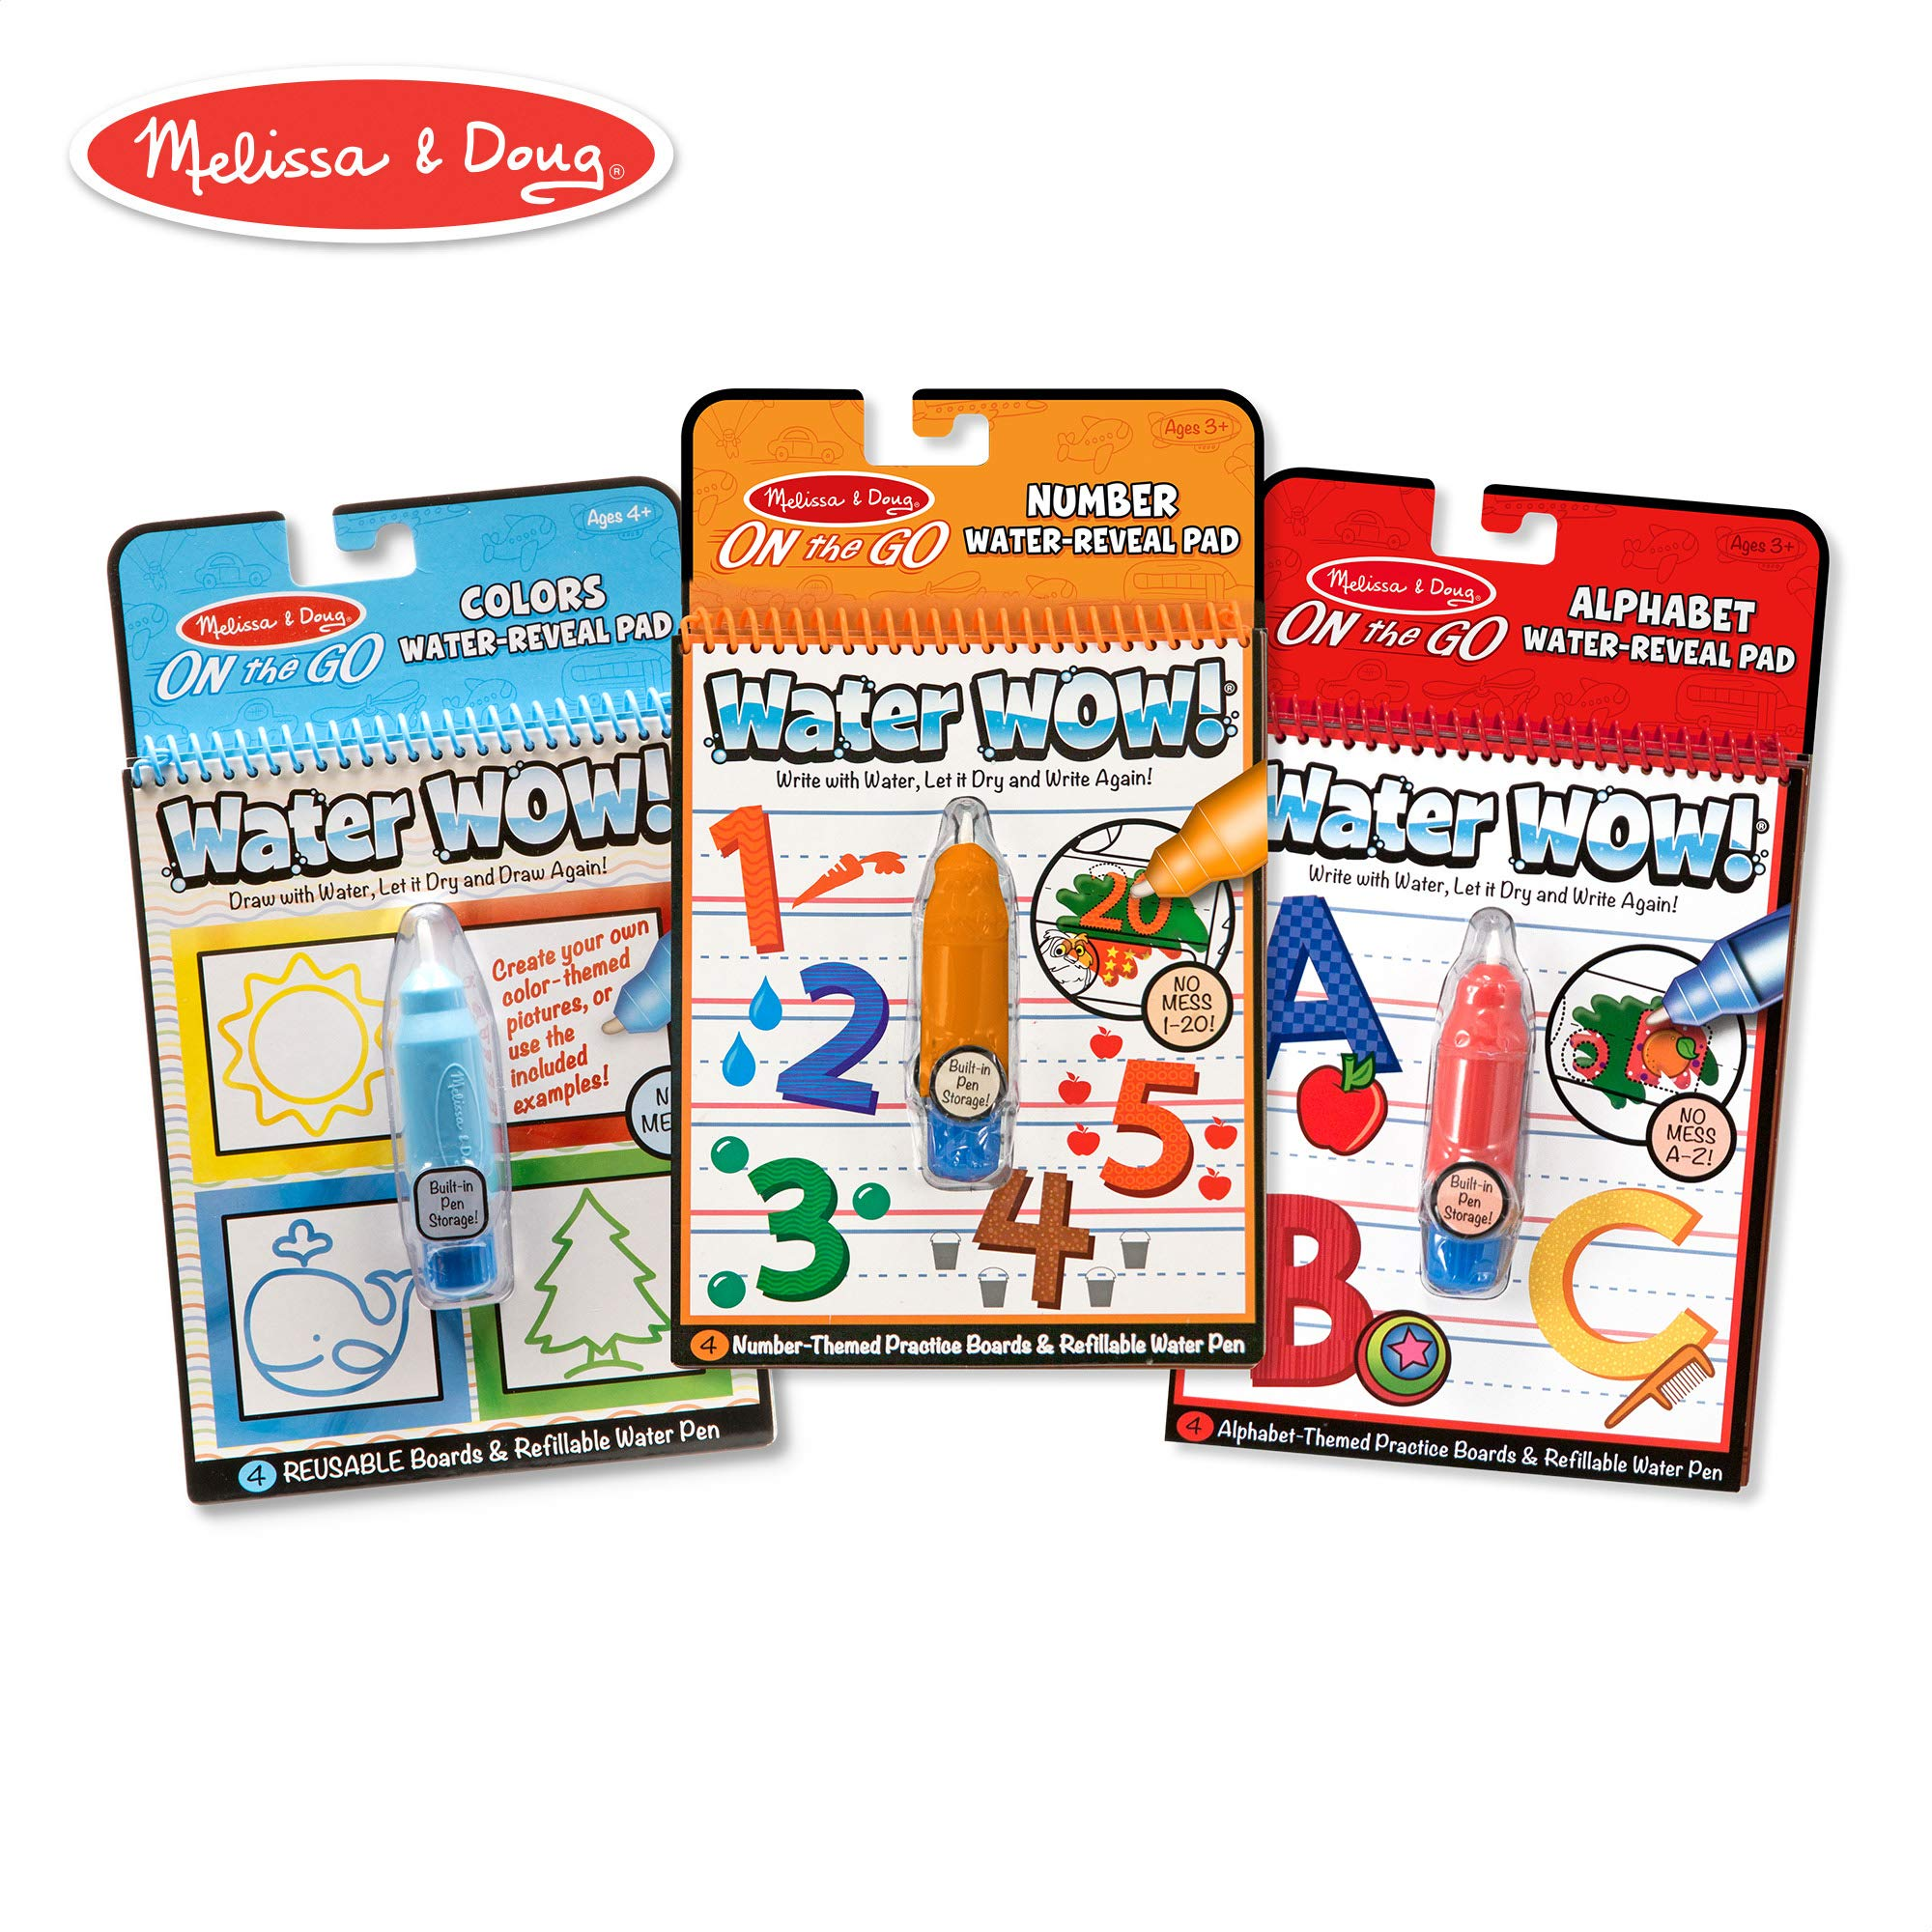 Melissa & Doug On the Go Water Wow! Reusable Water-Reveal Activity Pads,3-pk, Colors, Numbers, Alphabet by Melissa & Doug